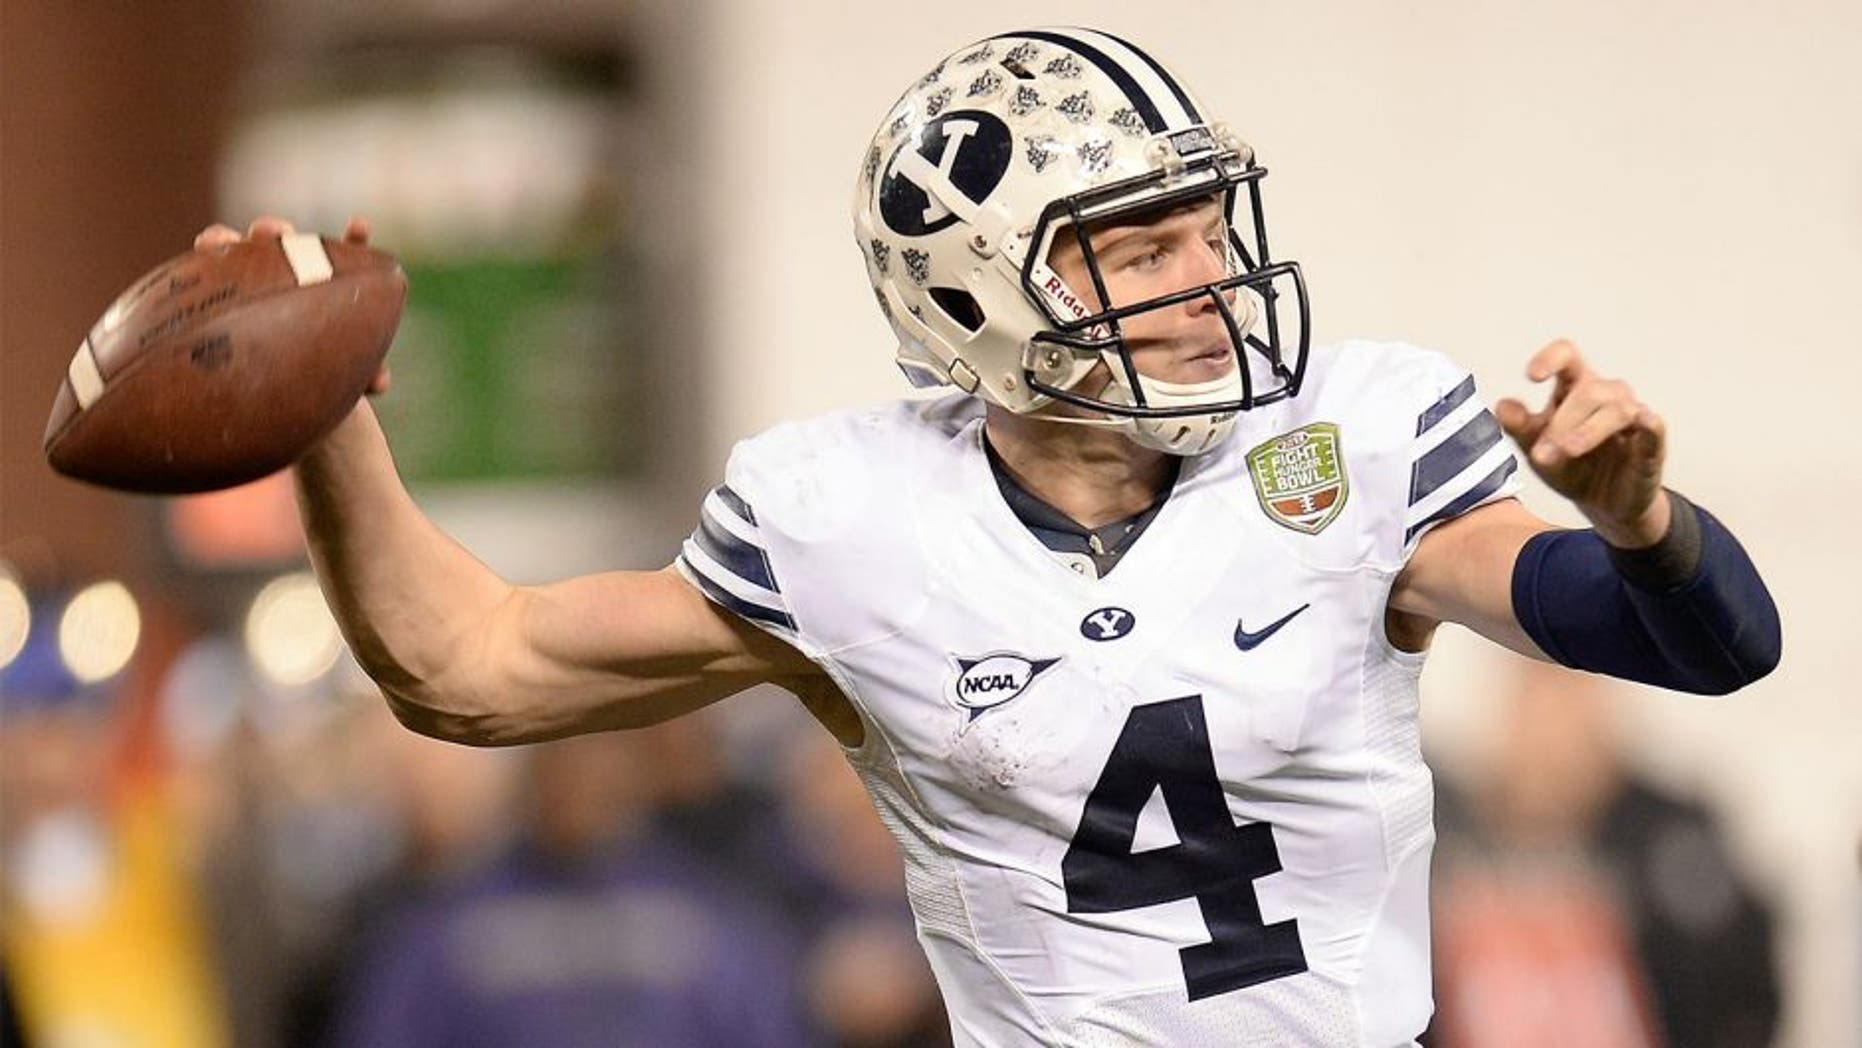 SAN FRANCISCO, CA - DECEMBER 27: Taysom Hill #4 of the BYU Cougars rolls out to pass against the Washington Huskies during the third quarter in the Fight Hunger Bowl at AT&T Park on December 27, 2013 in San Francisco, California. (Photo by Thearon W. Henderson/Getty Images) *** Local Caption *** Taysom Hill